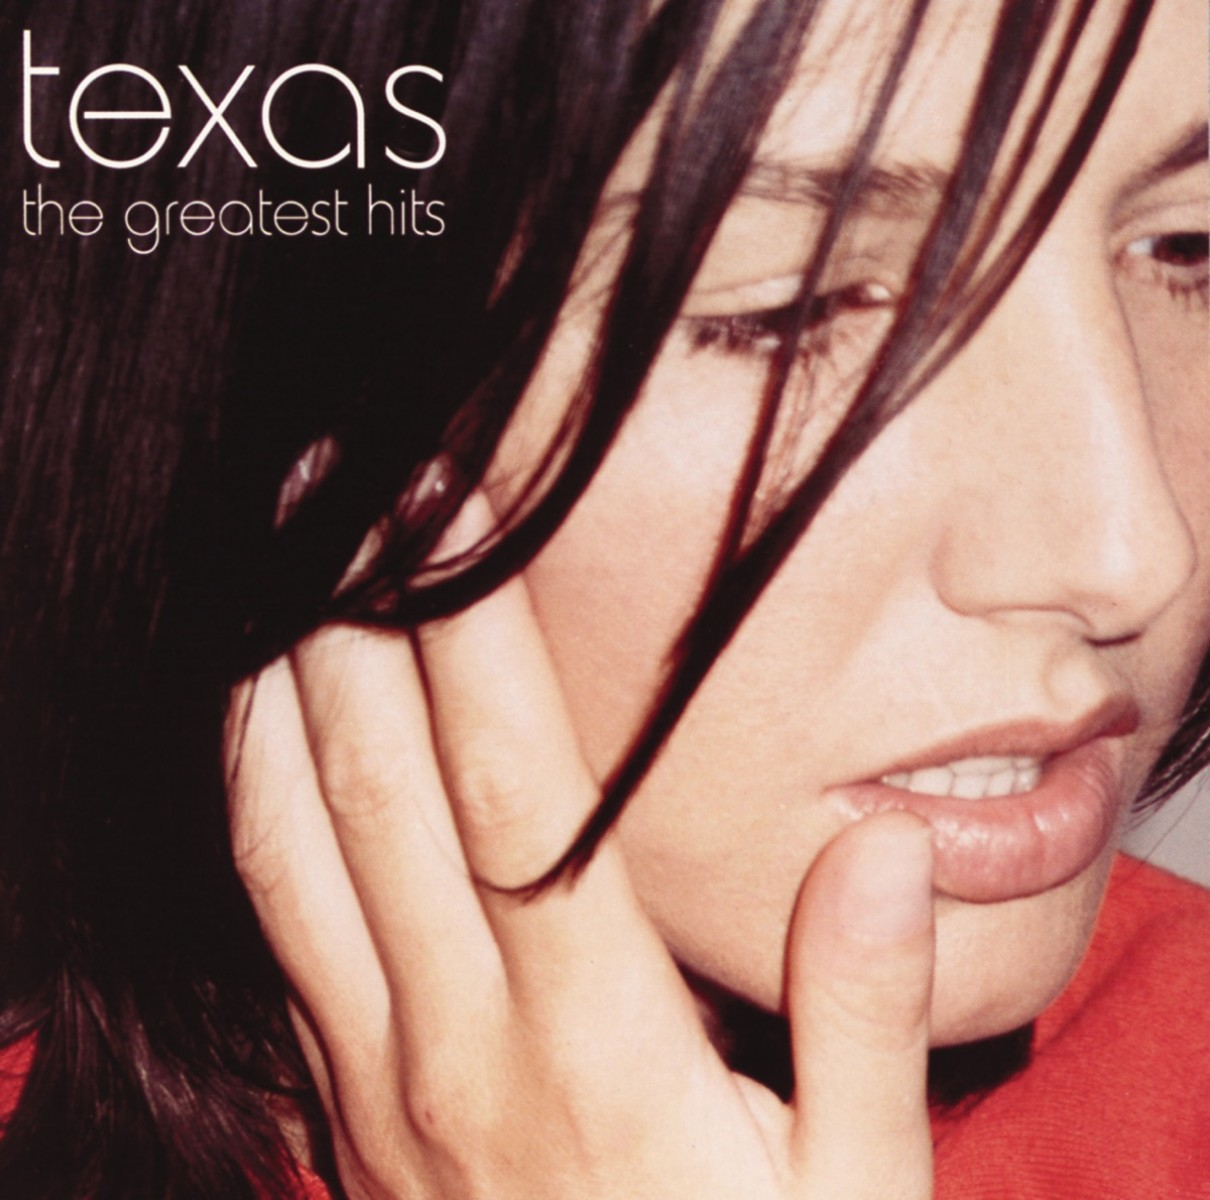 Texas - The Greatest Hits (Special Edition) CD - SSTARCD 6827